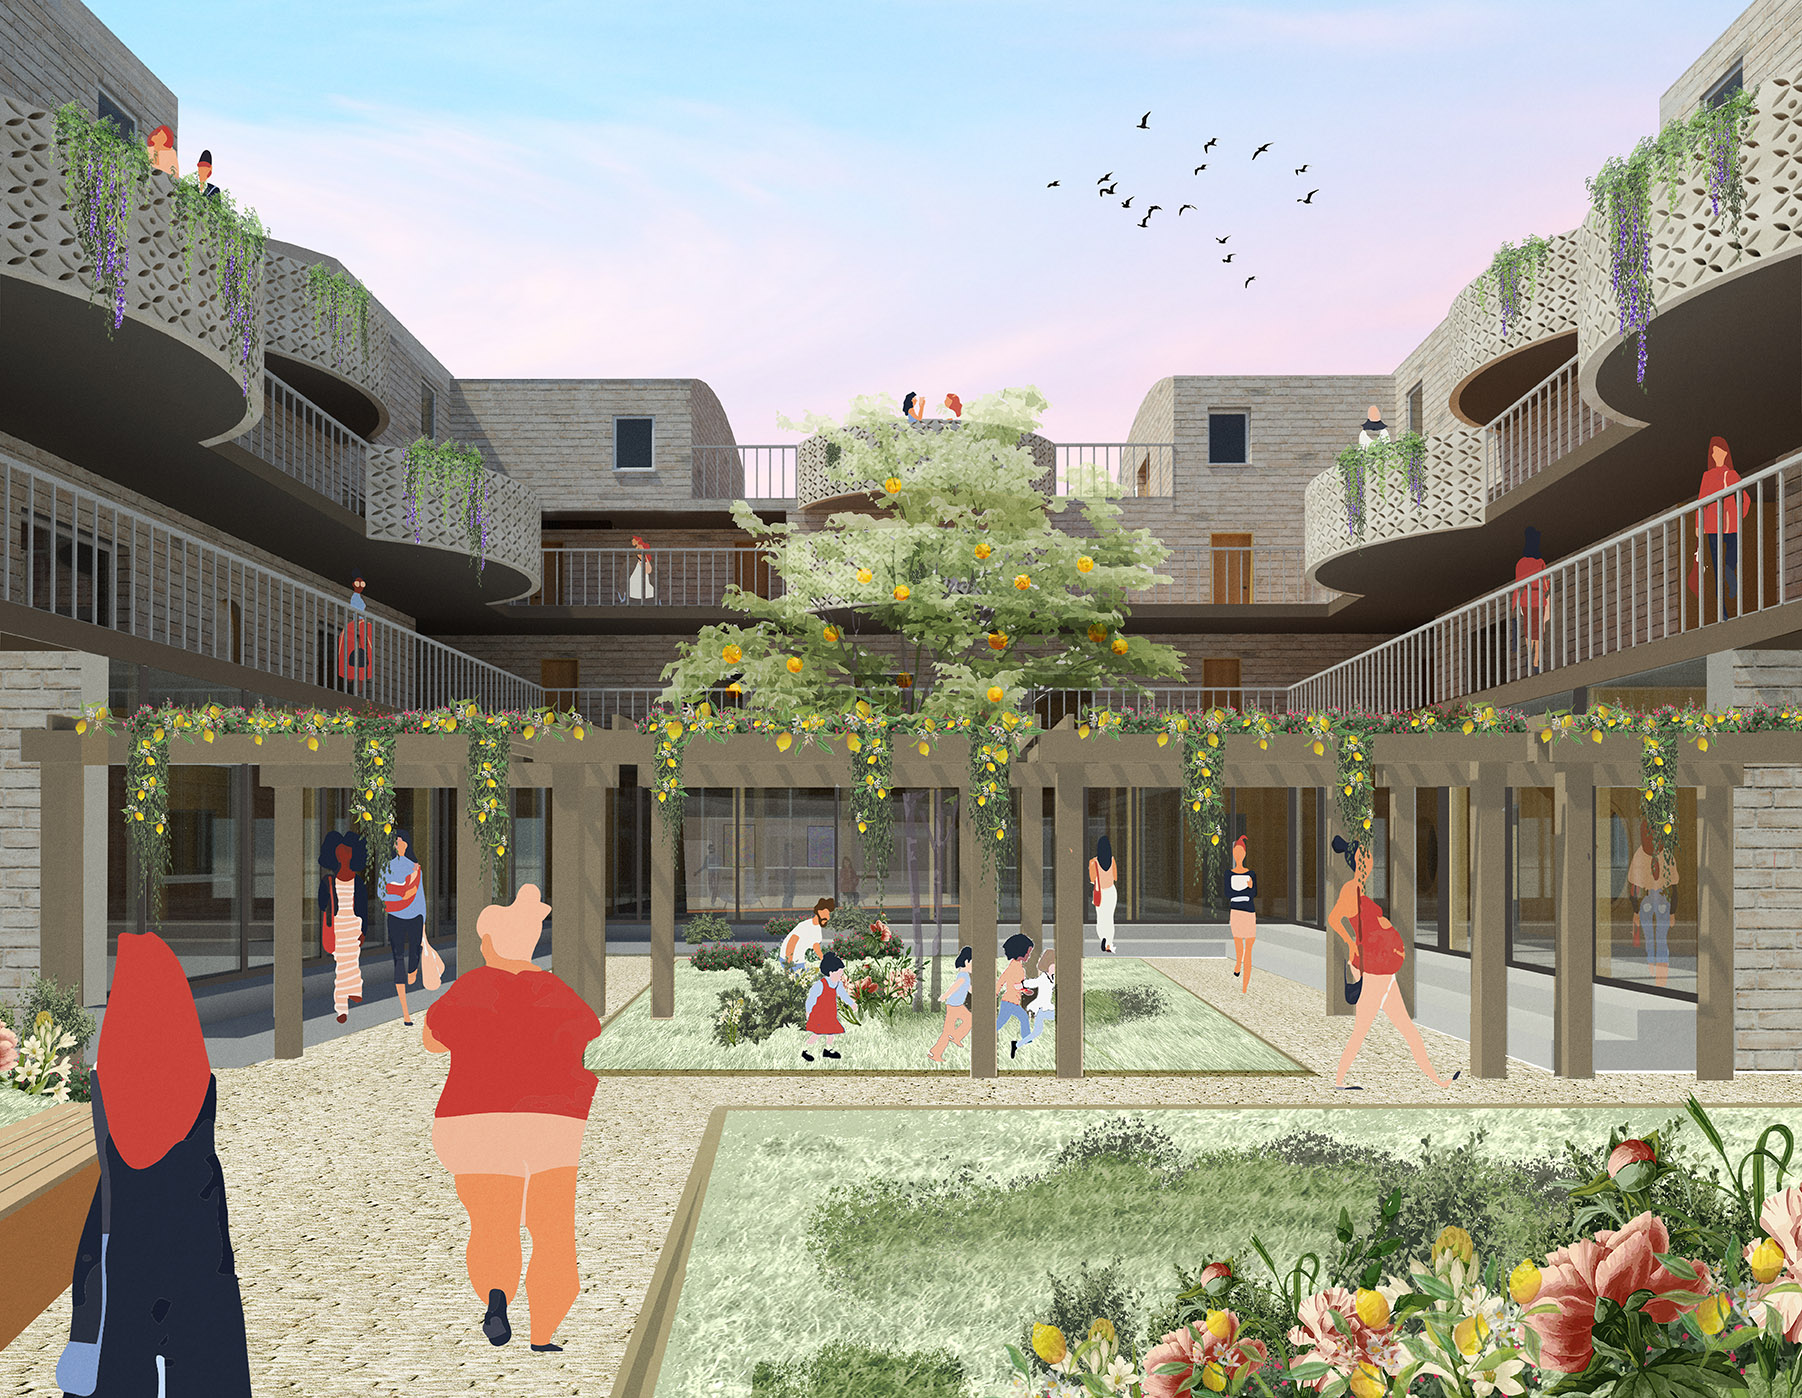 The courtyard provides a safe and welcoming enclosure for women and children - creating a heart to the shelter and encouraging interaction.